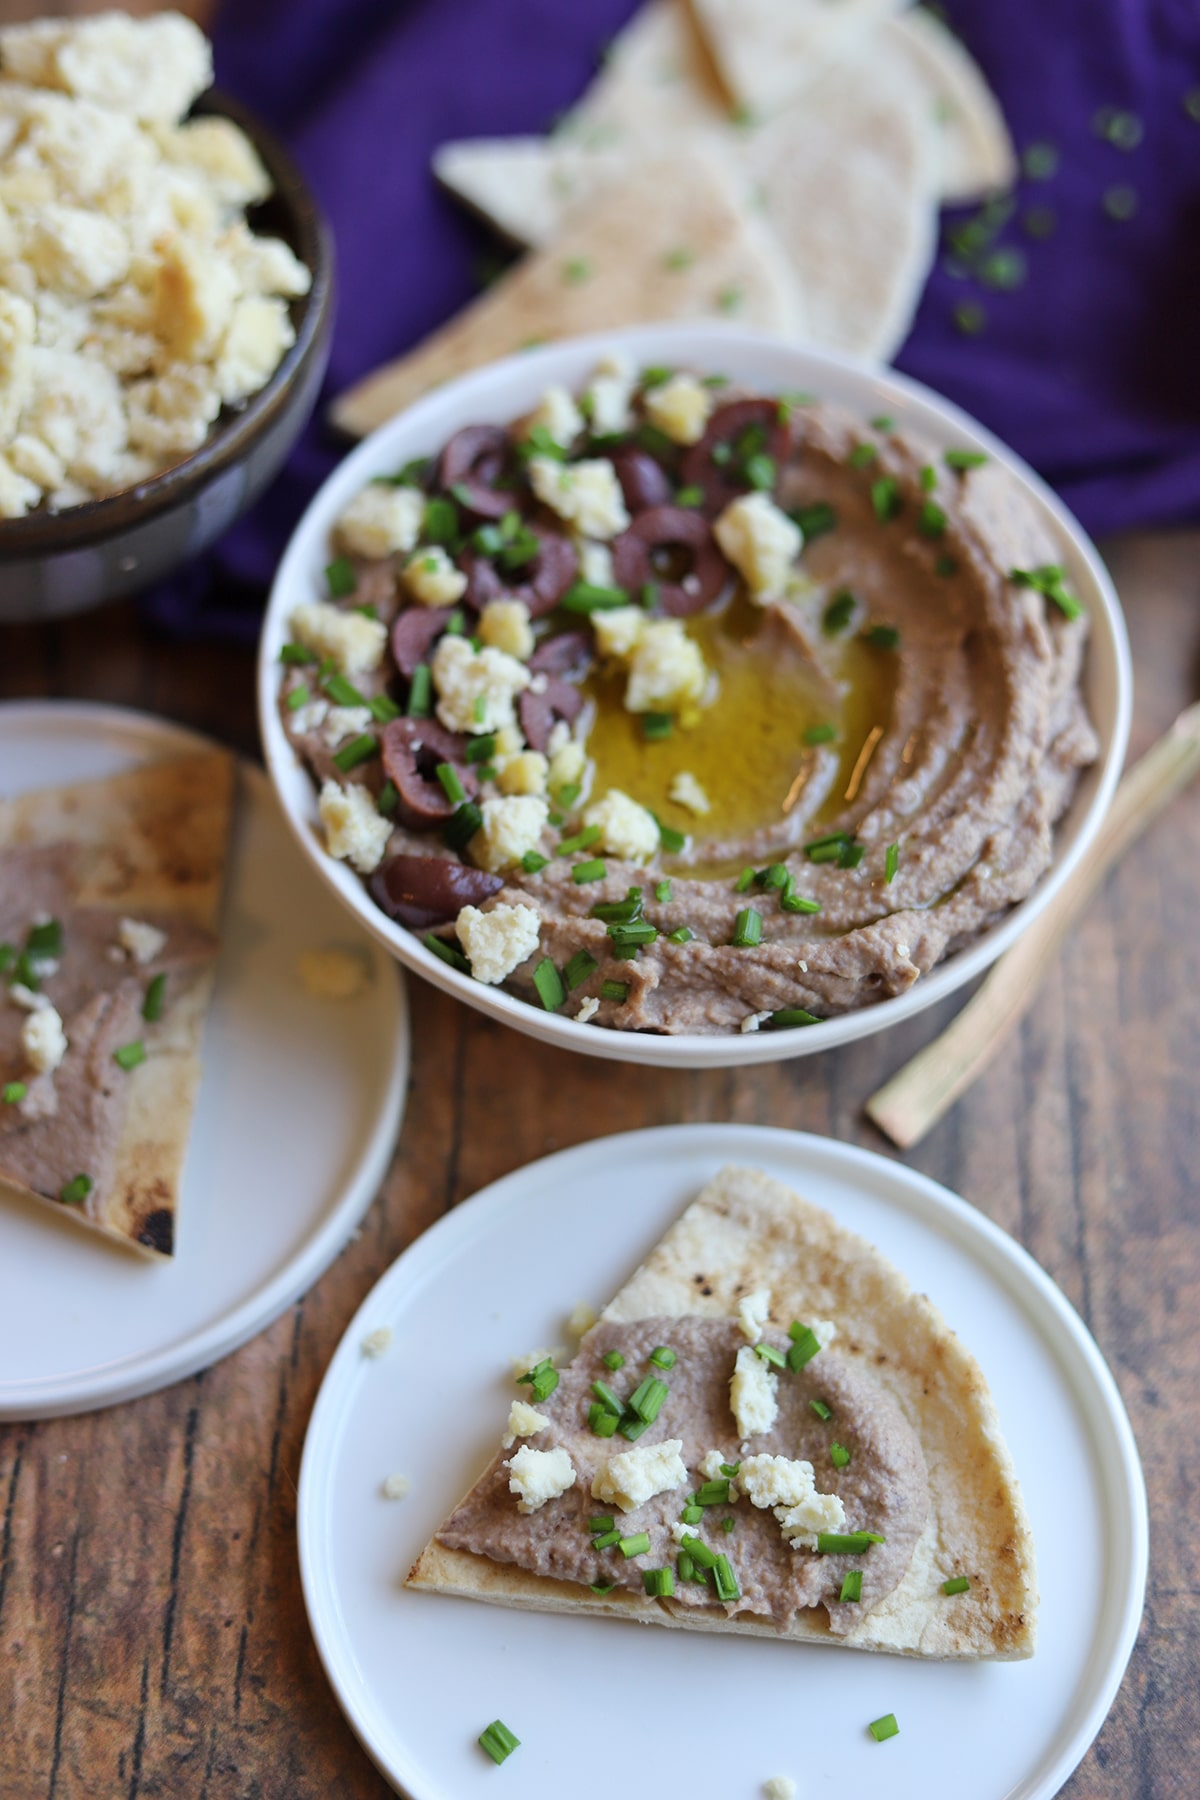 Plate with pita by bowl of hummus.